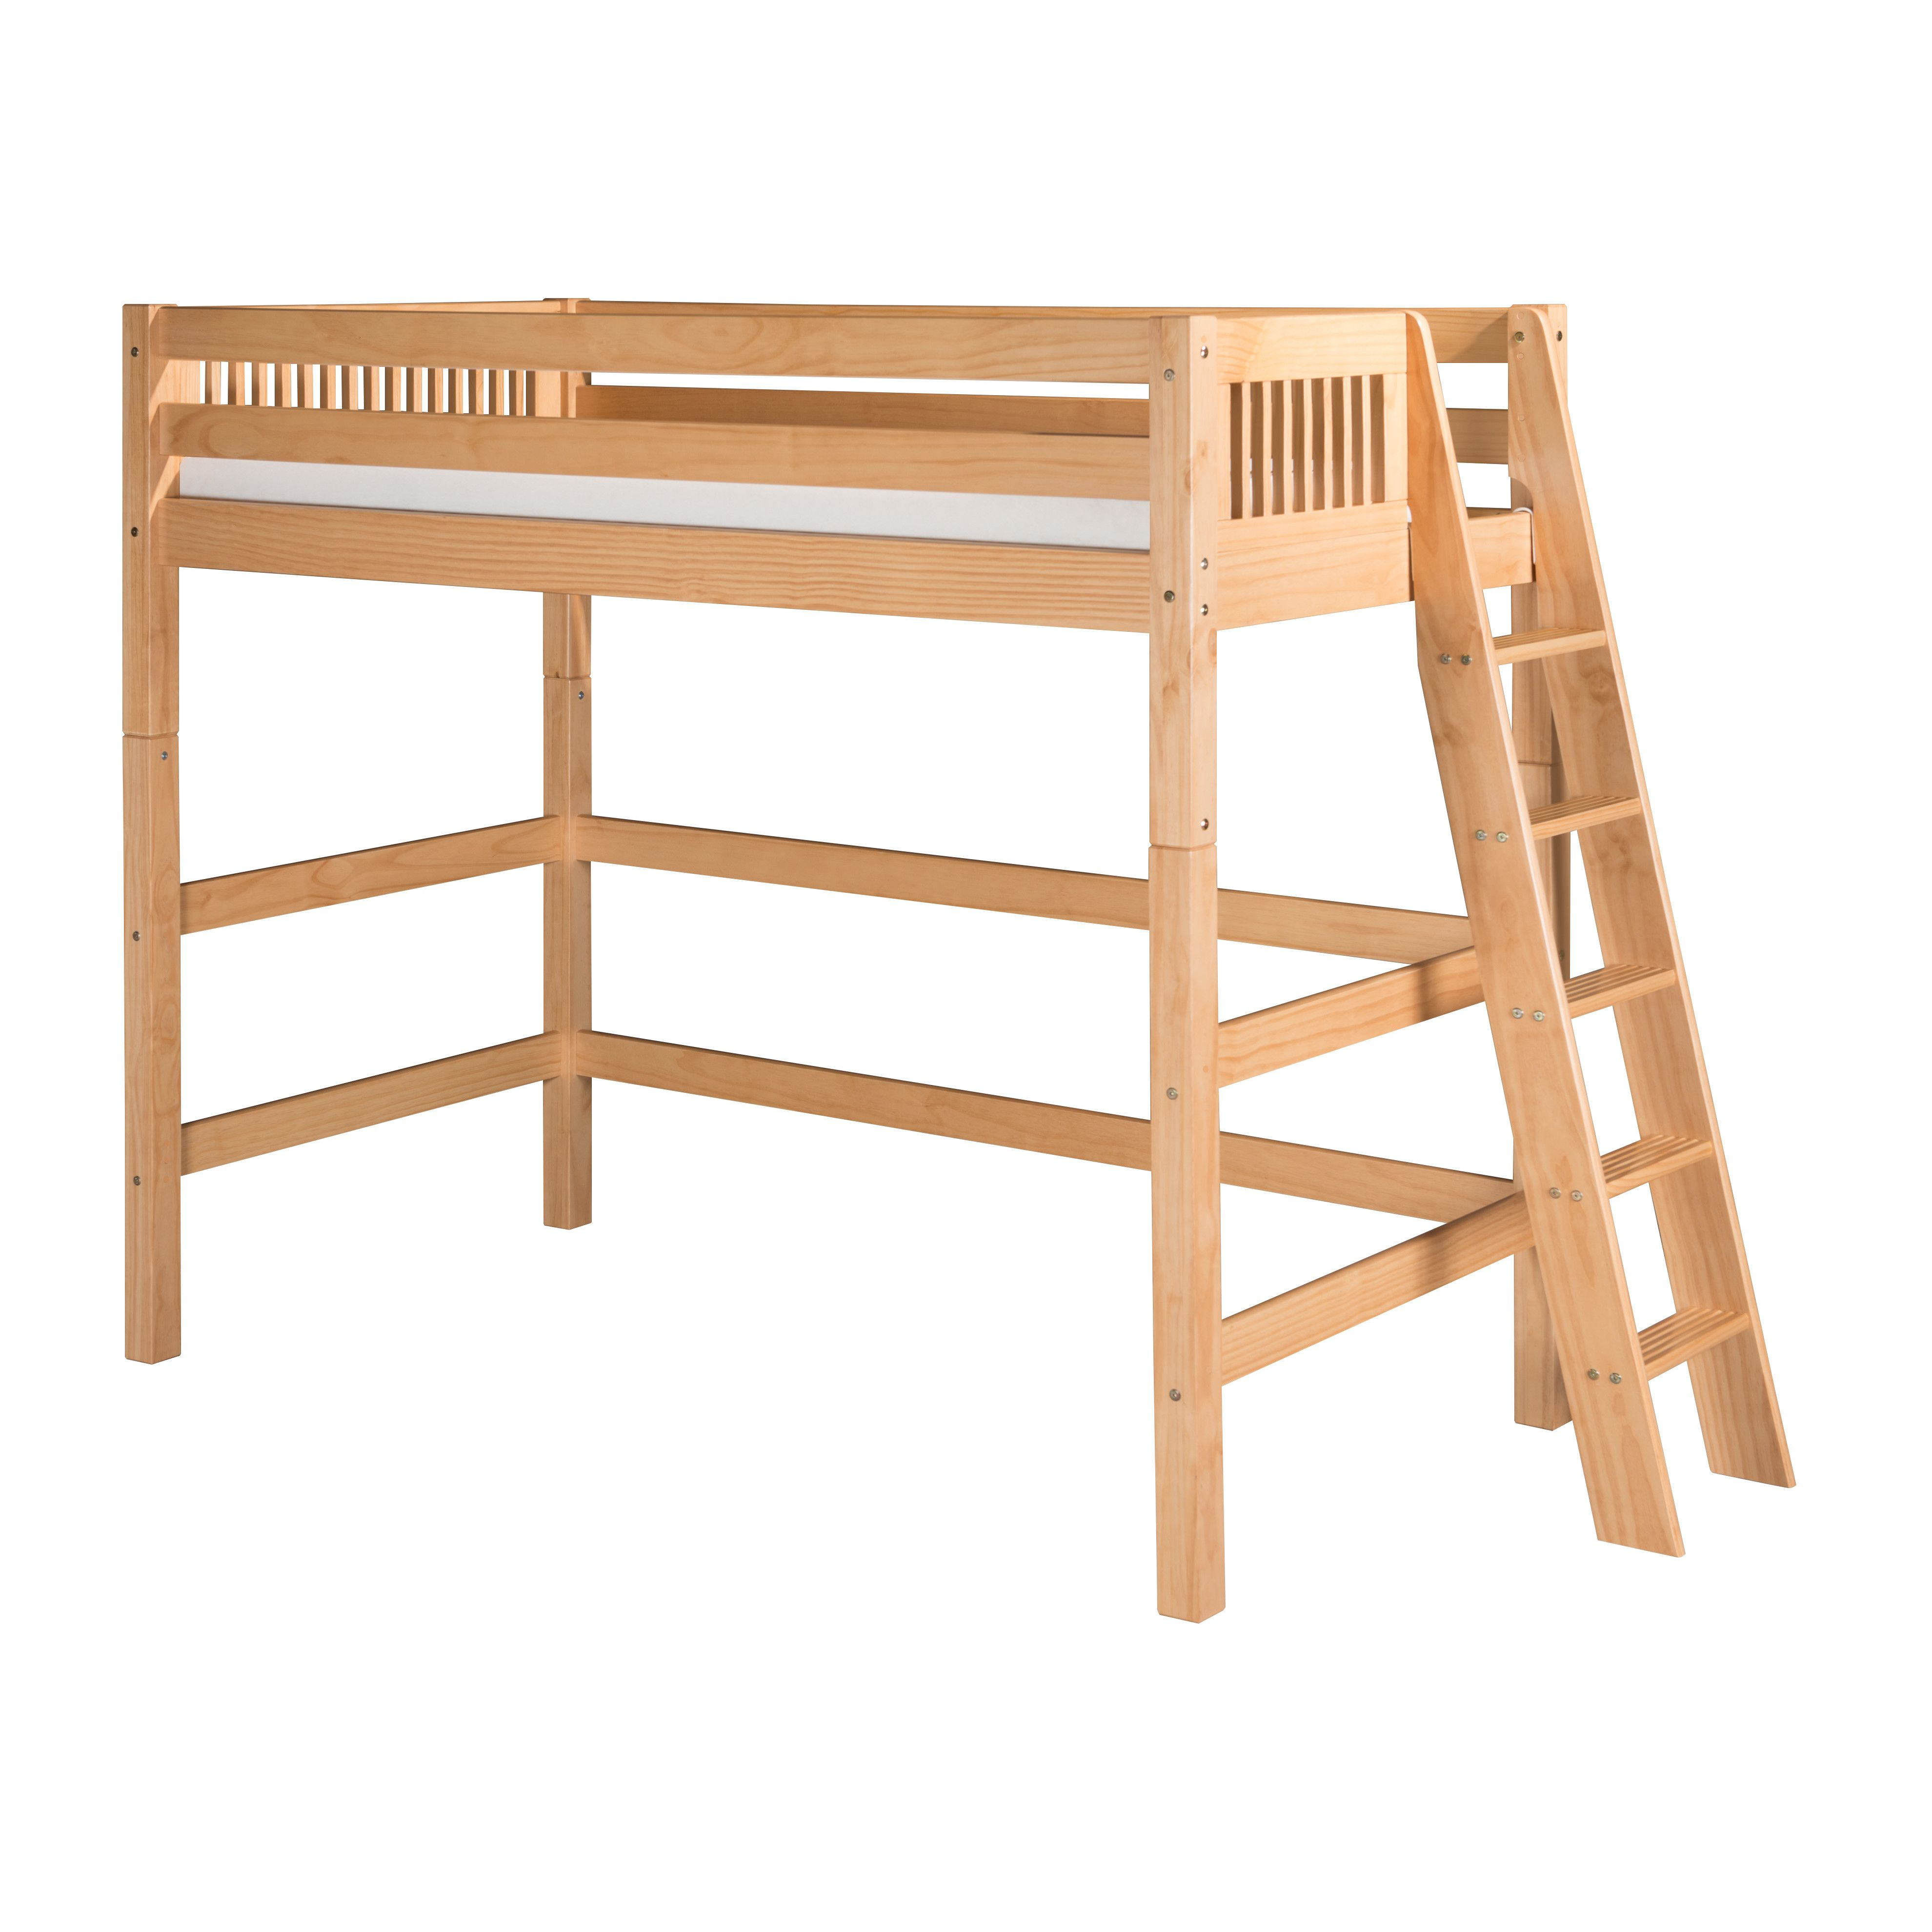 Loft bed ladder ideas  Youull love the Loft Bed at Wayfair  Great Deals on all Furniture